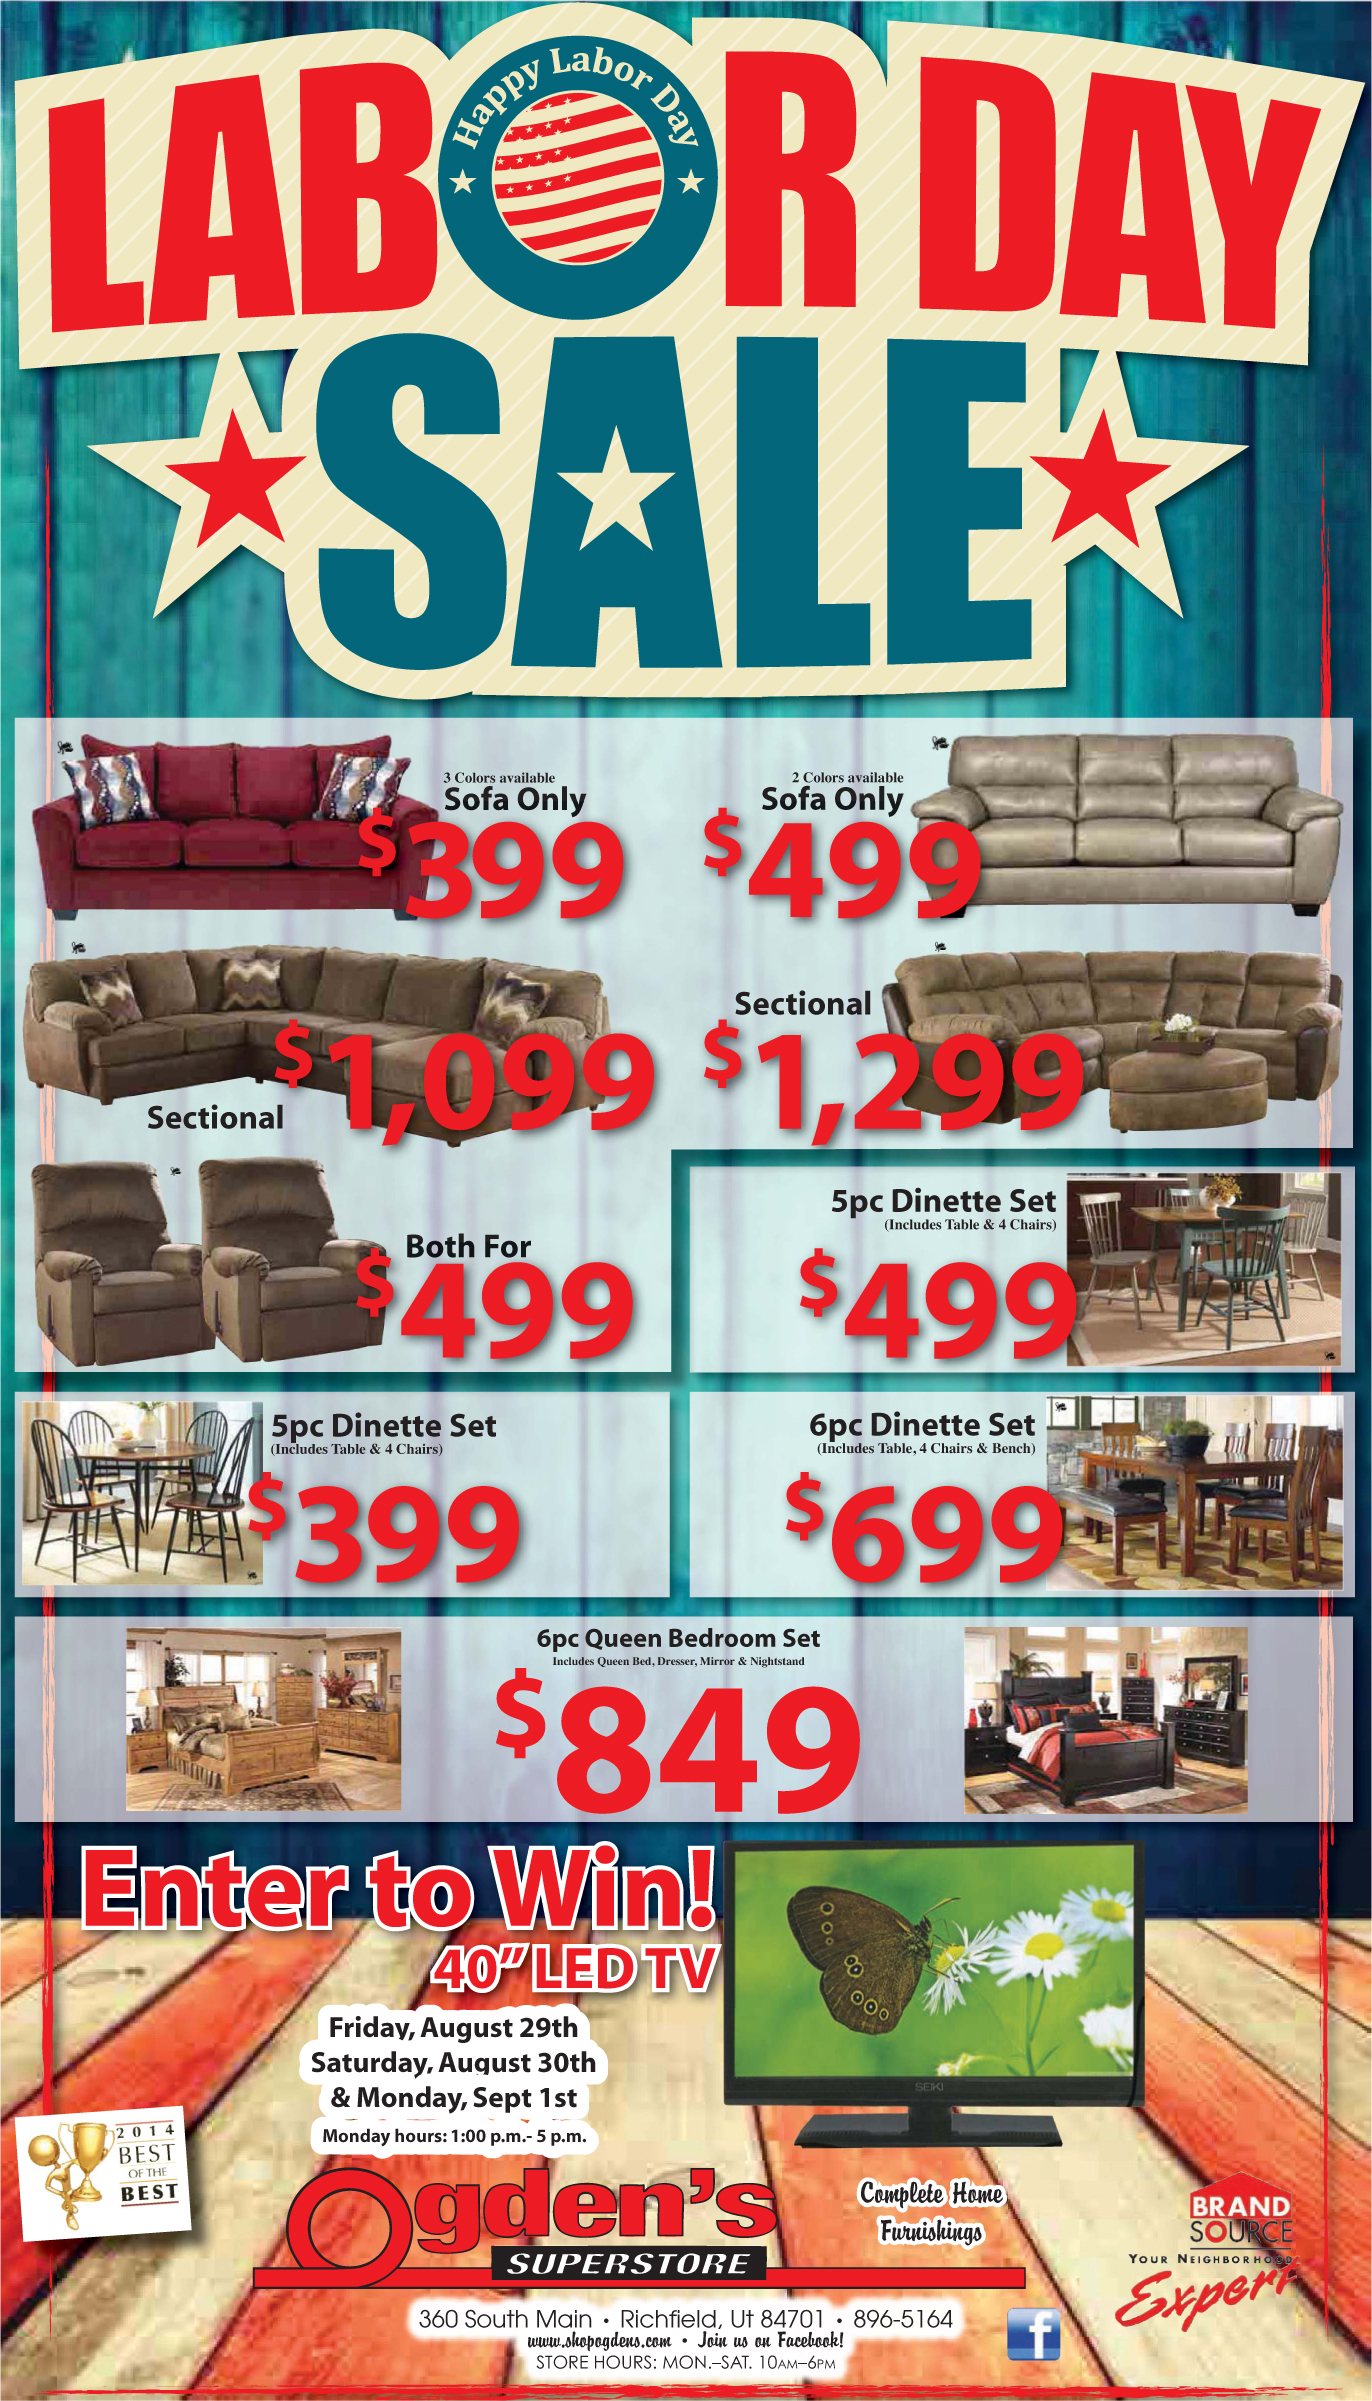 Advertisement design by Graphic Designer Dallas Price for Ogdens Superstore. Published in The Richfield Reaper 08/27/2014